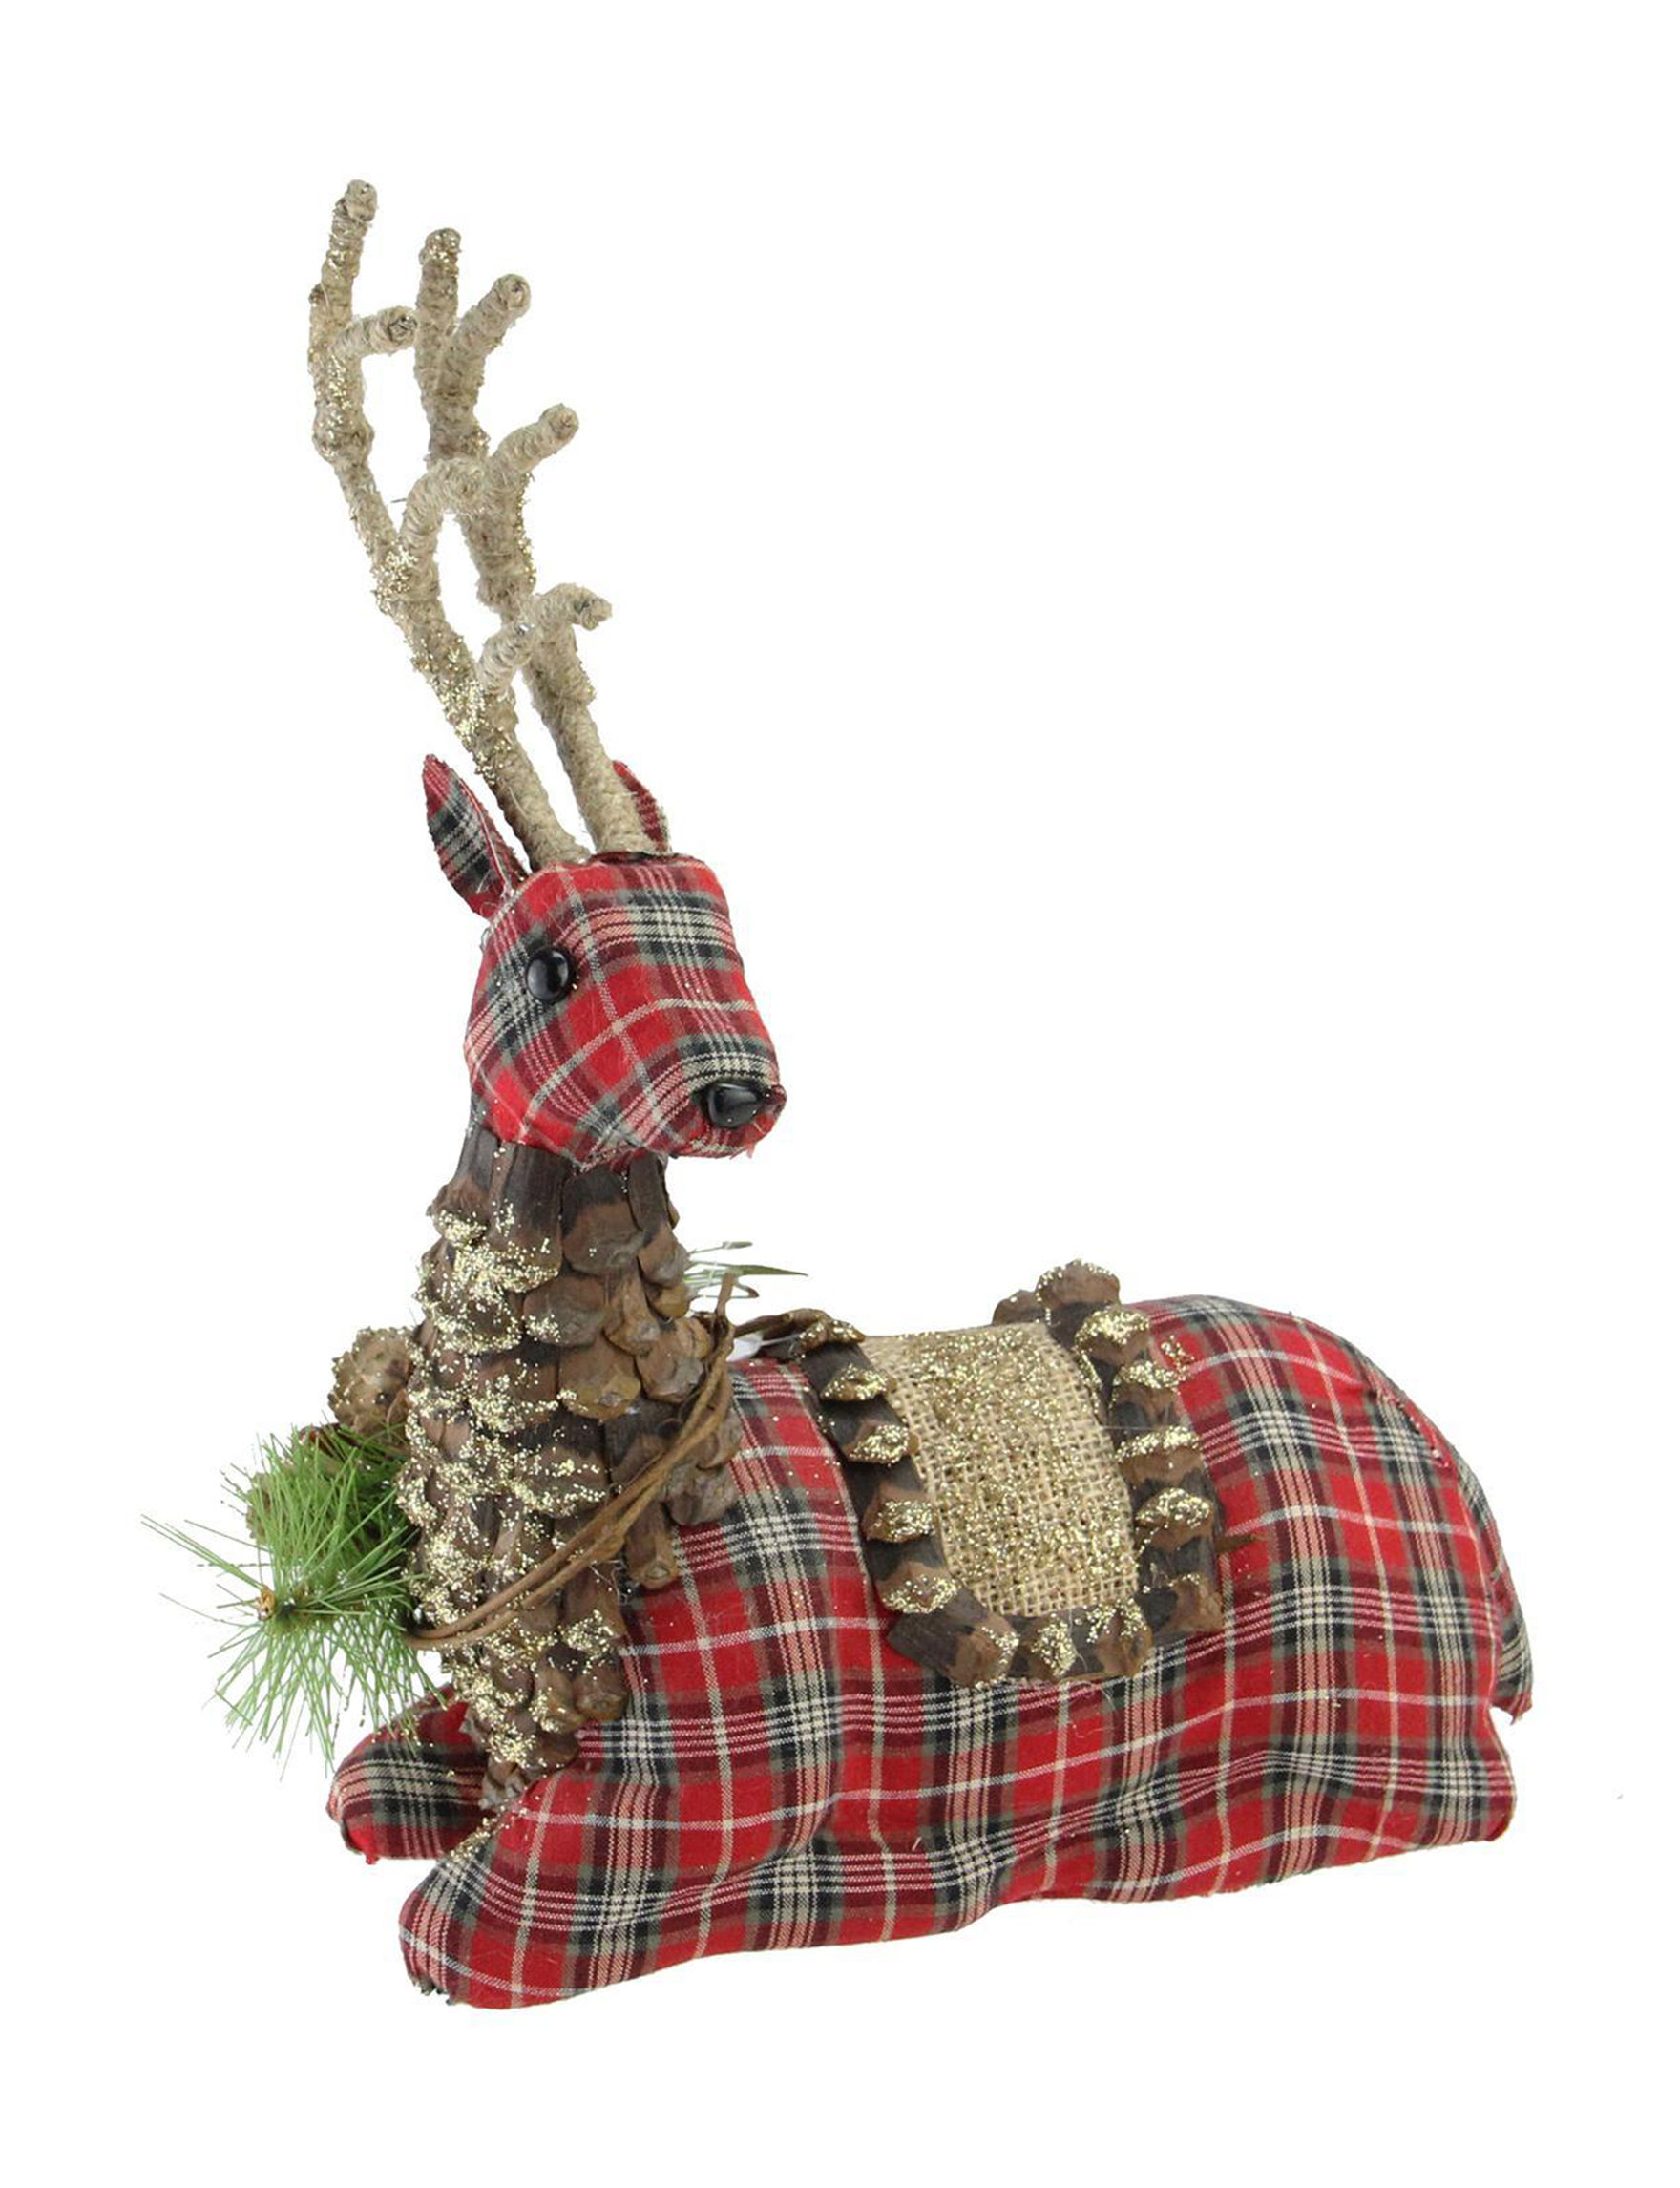 Northlight Plaid Decorative Objects Holiday Decor Home Accents